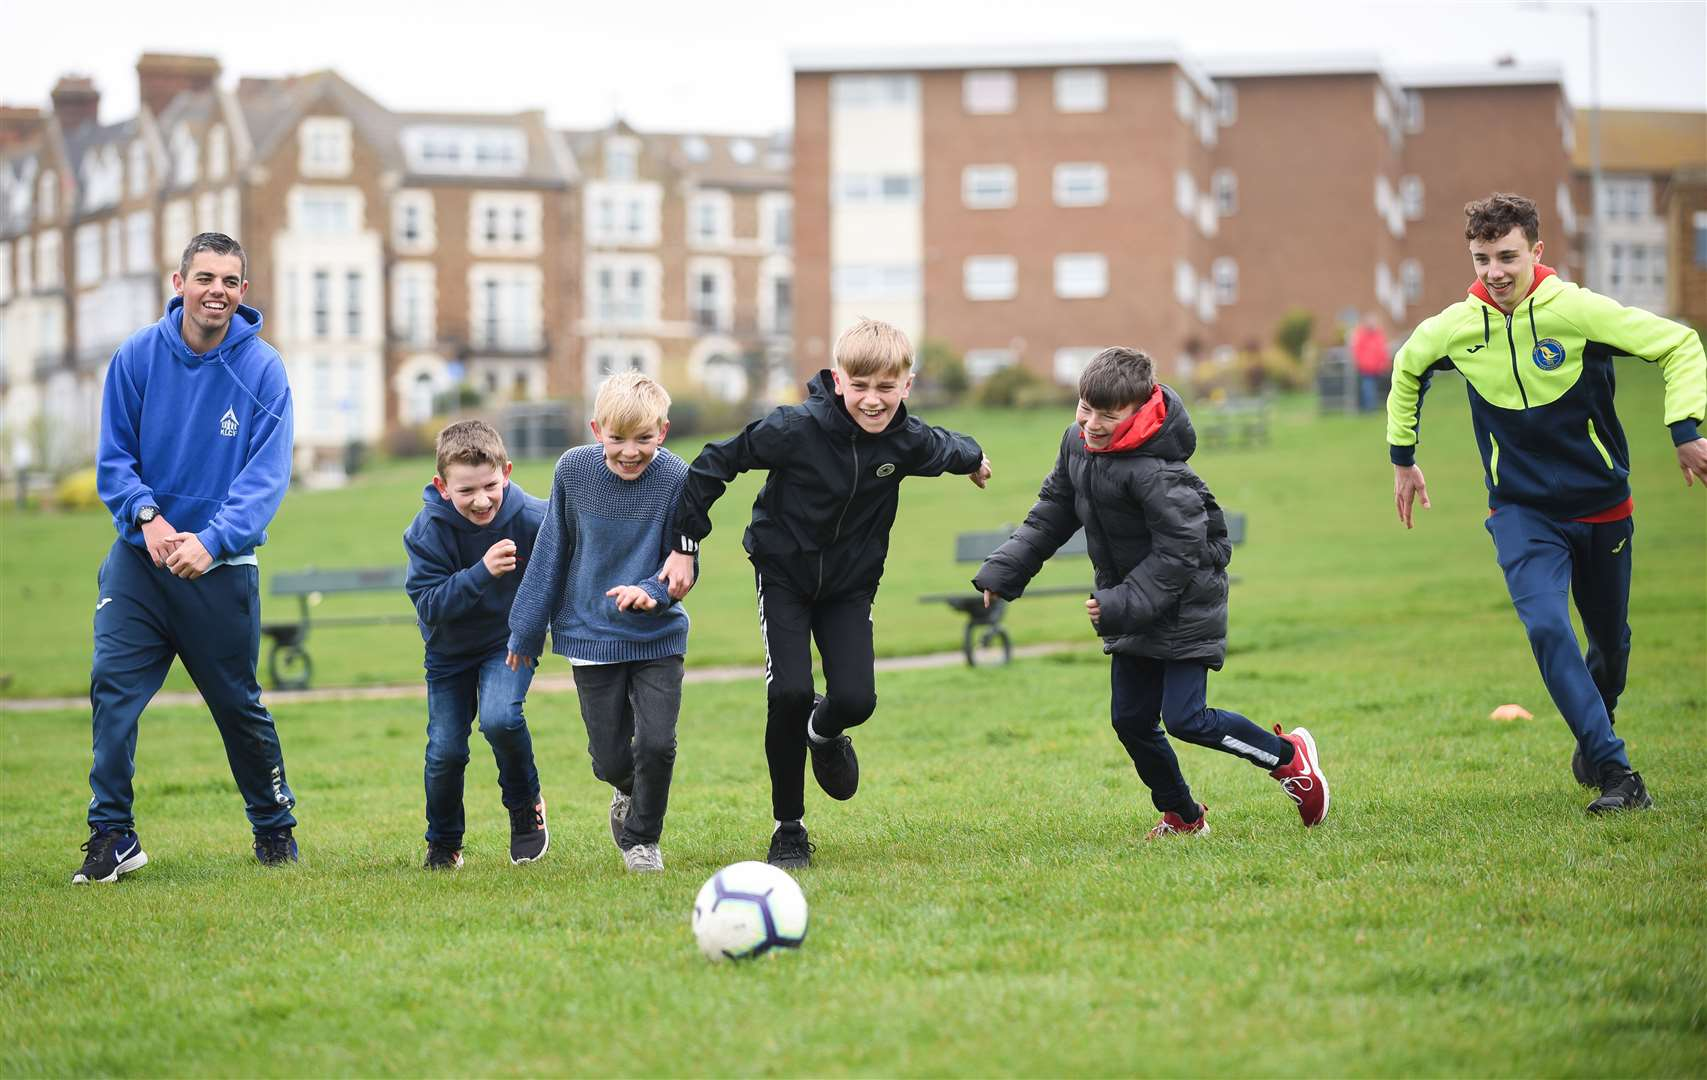 A half-term multi-sport session was held on The Green in Hunstanton. Pictured from left to right are King's Lynn Community Football coach Nathan Hudson, Jacob Asman (10), Charlie Burrell (10), Alfred Buhlemann (10), Henry Buhlemann (9) and Joe Gascoigne